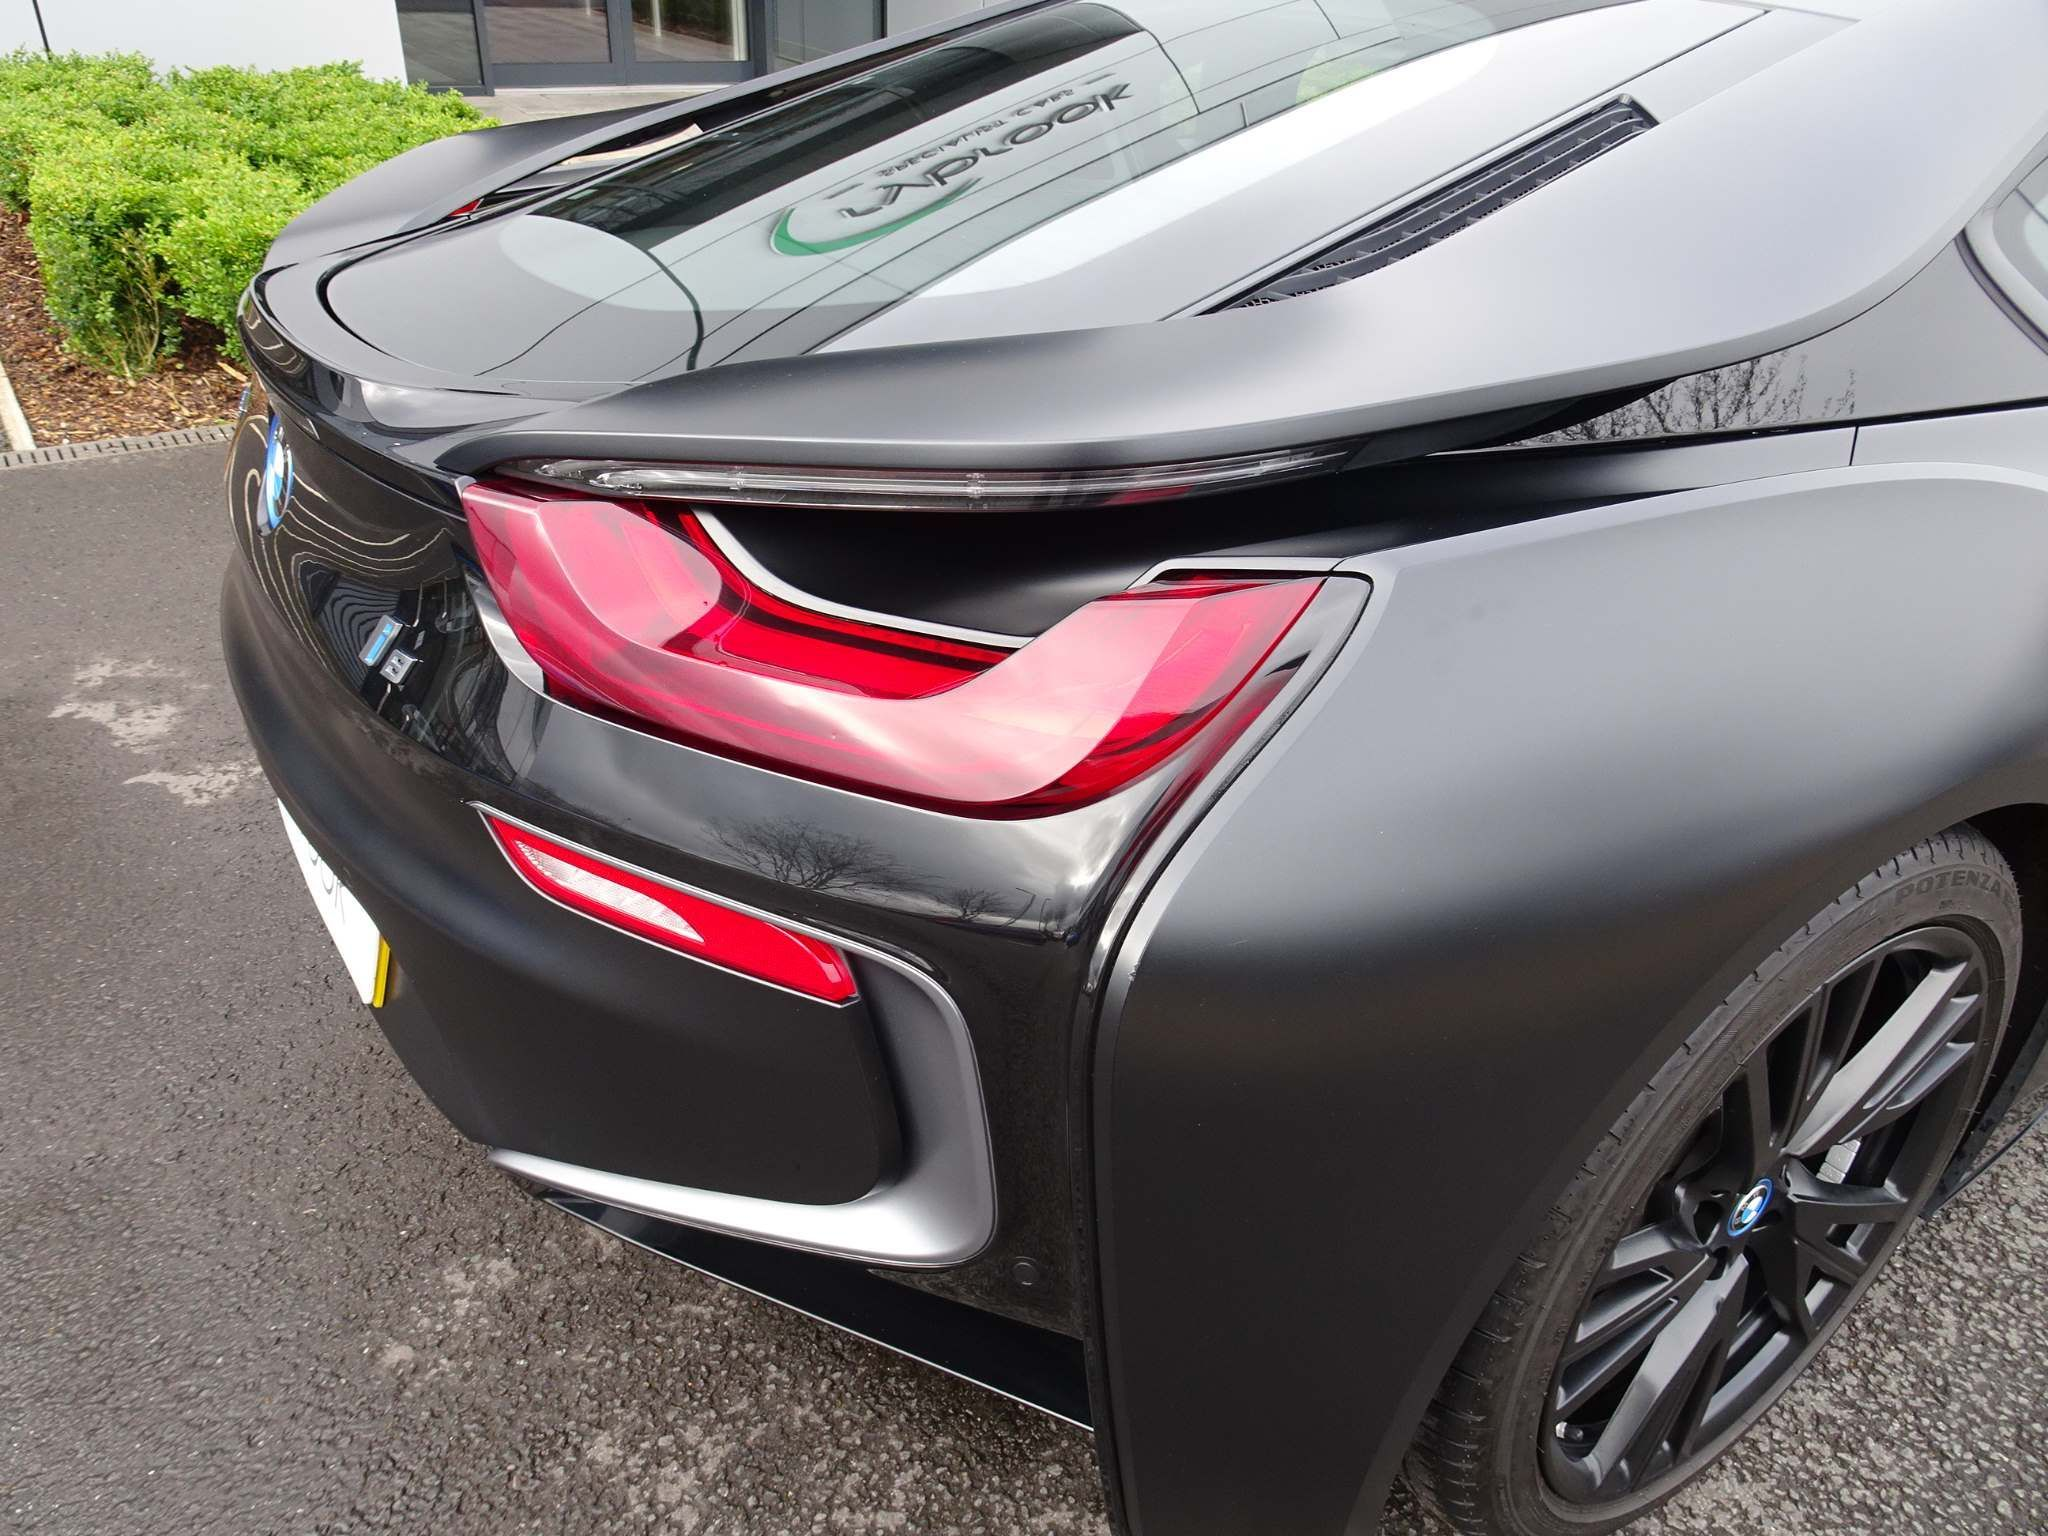 BMW i8 1.5 7.1kWh Protonic Frozen Black Edition Auto 4WD (s/s) 2dr